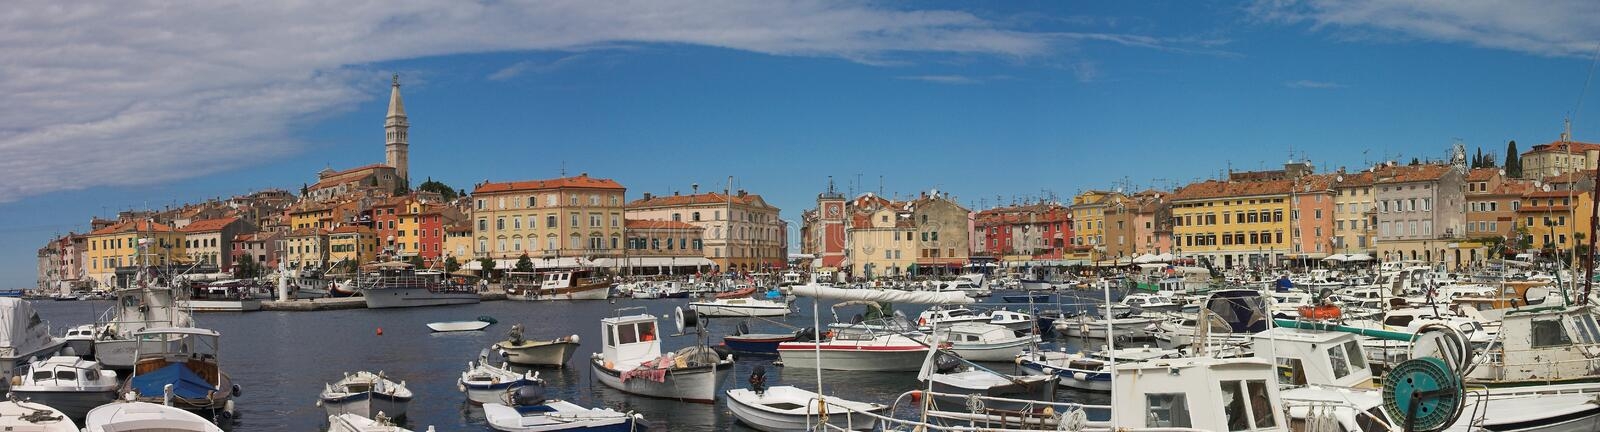 Download Rovinj stock photo. Image of scenics, nautical, houses - 3319170